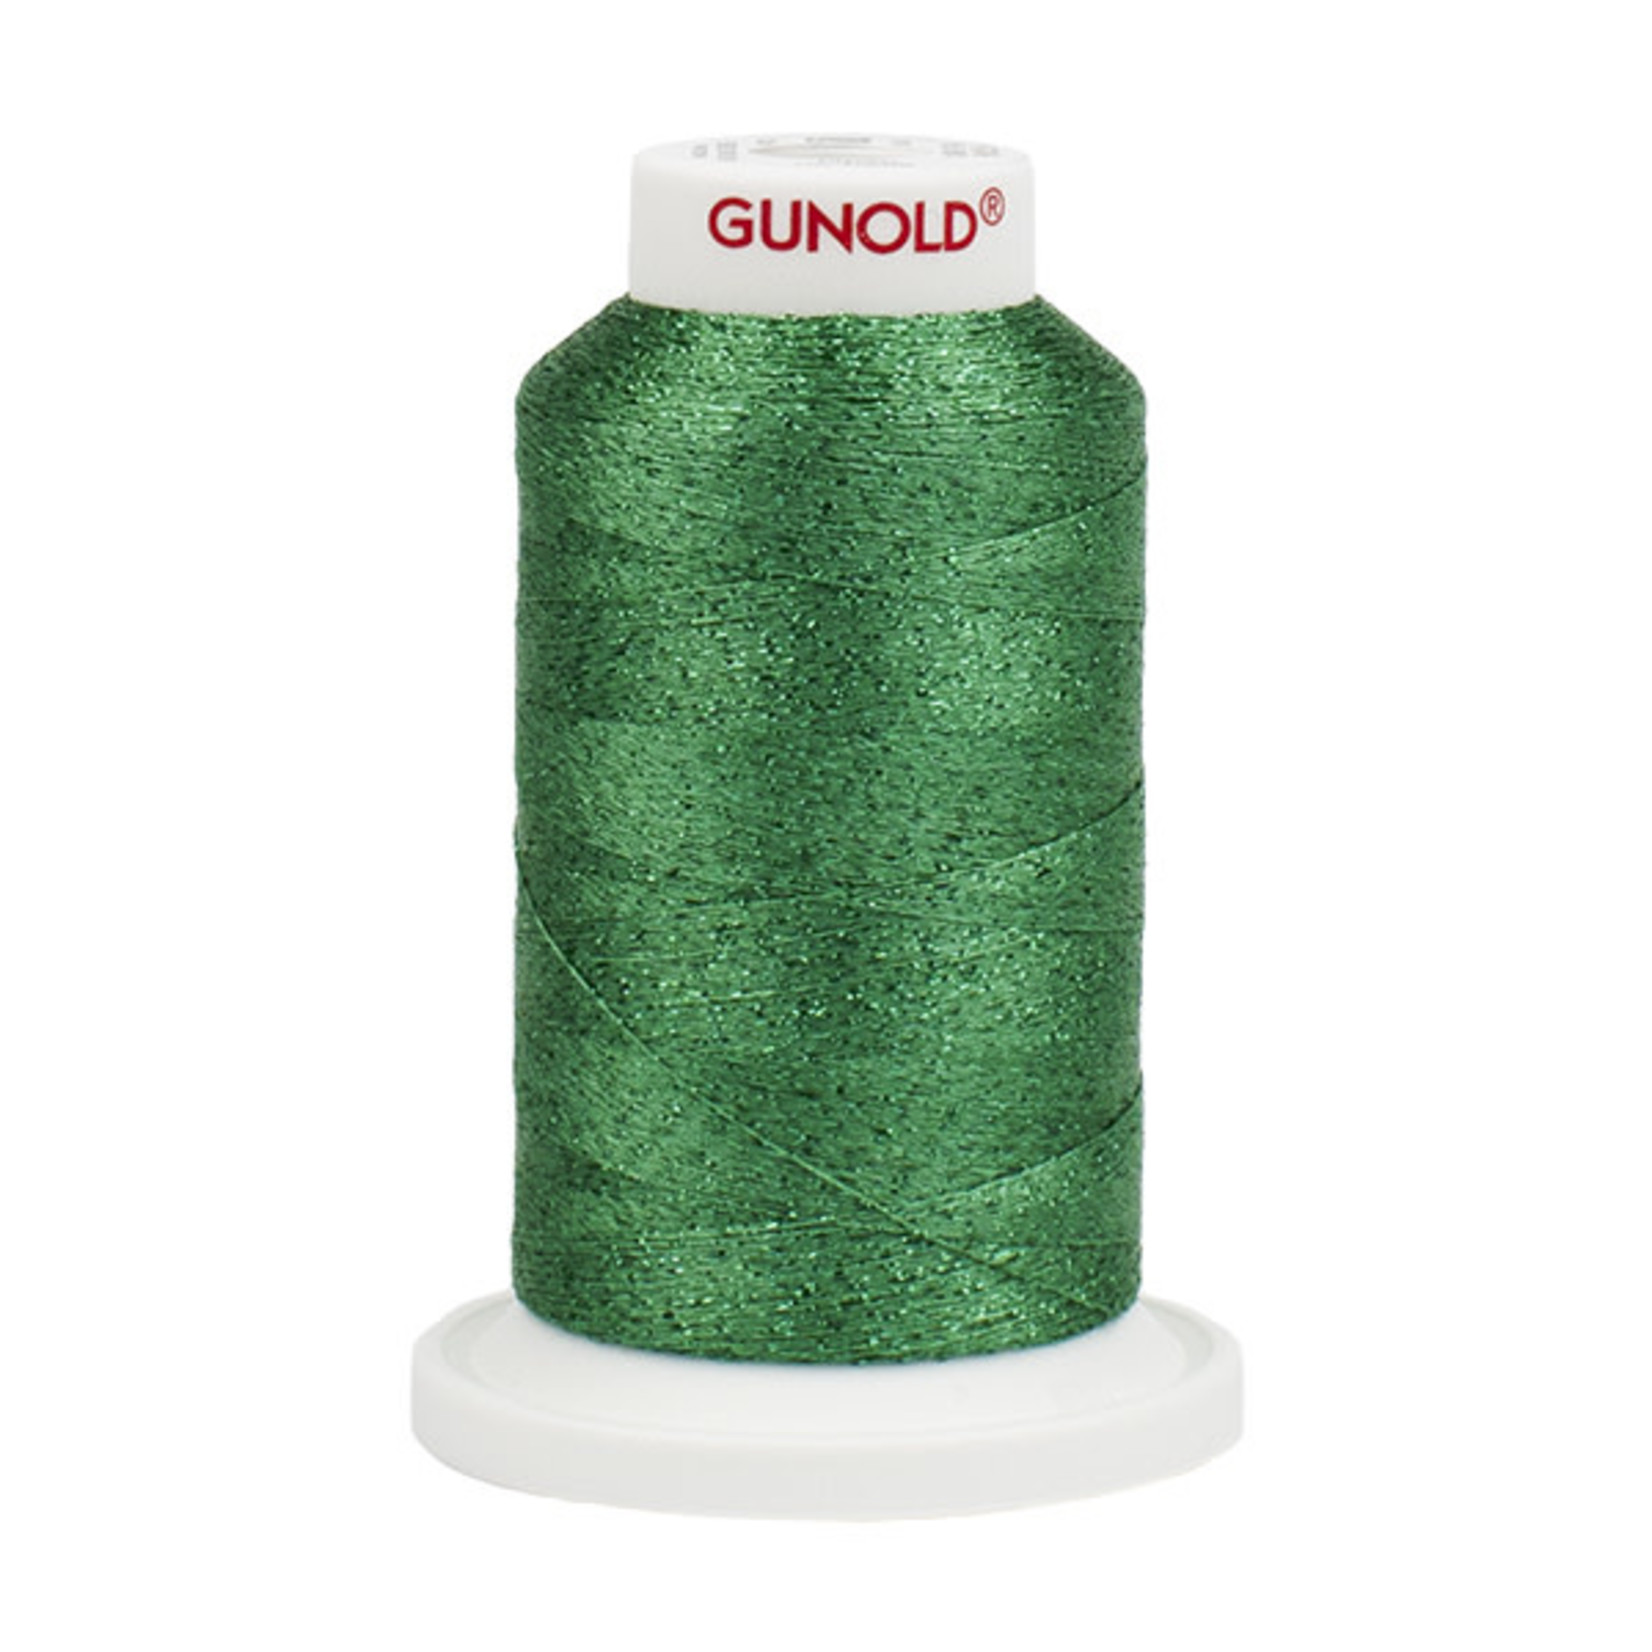 Gunold Poly Sparkle™ (Star™) Mini-King Cone 1,100 YD, 30 Wt, True Green with Tone On Tone Sparkle 50913